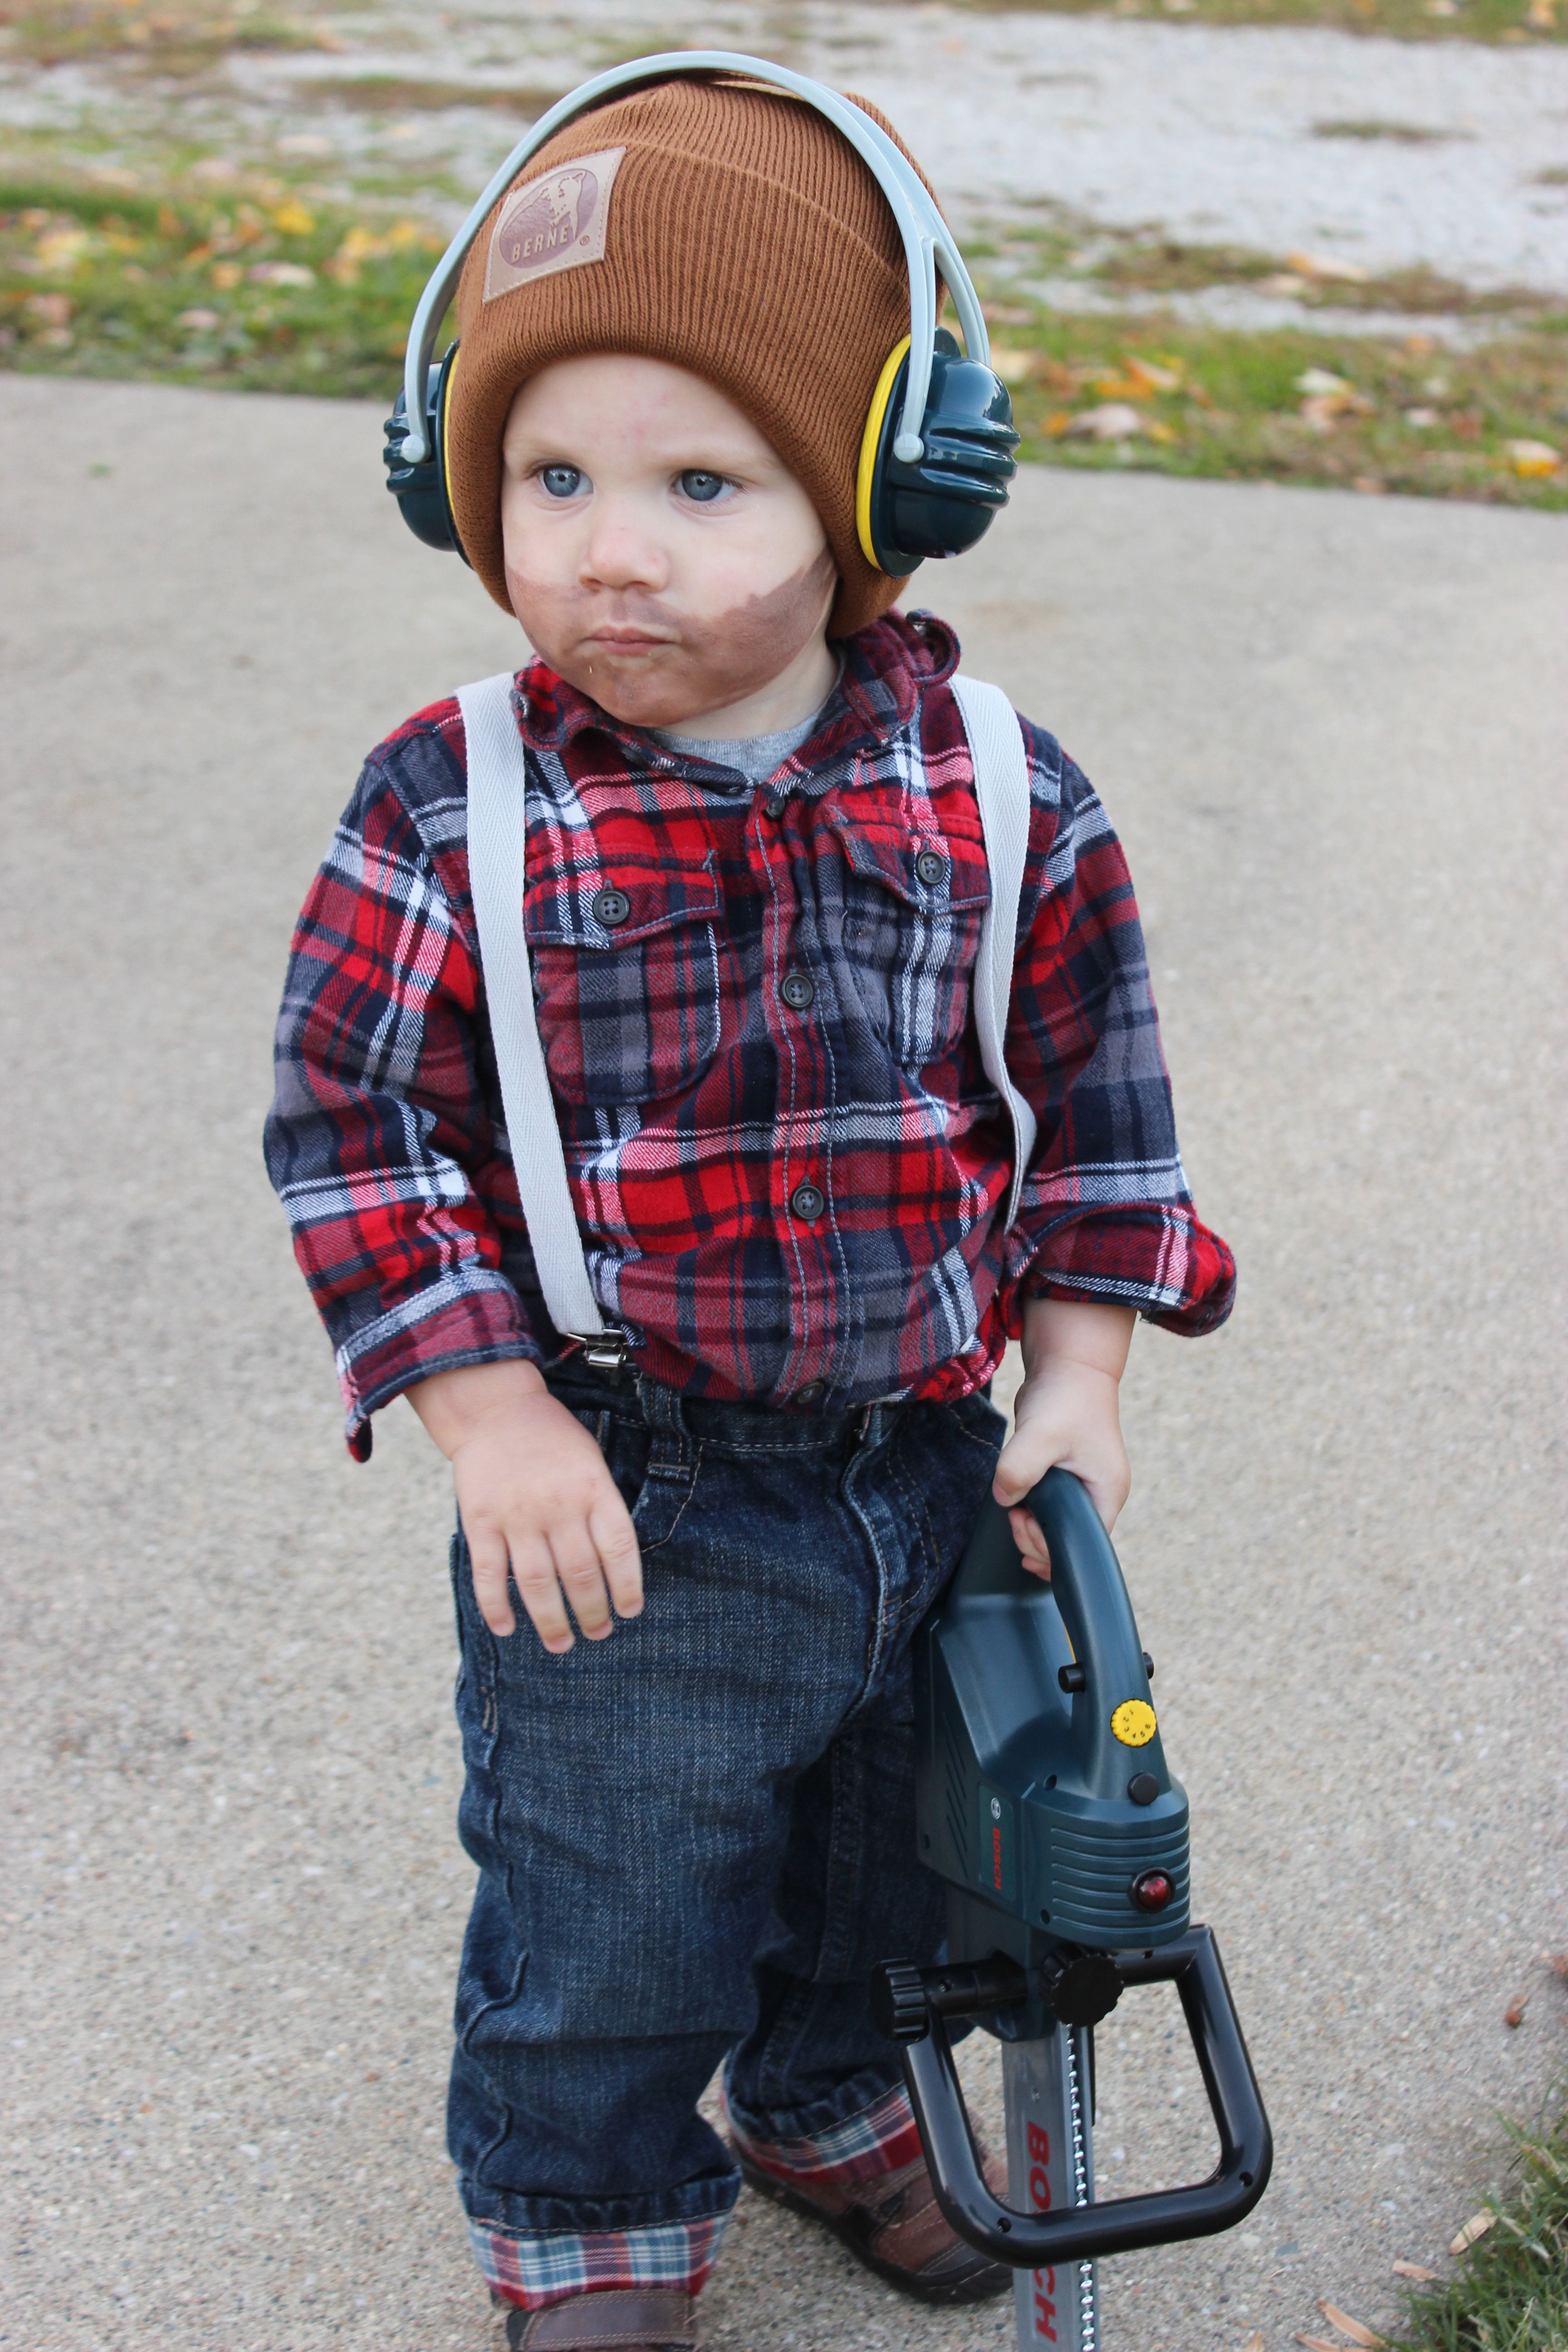 Pax's lumberjack halloween costume | Things I have and love ...